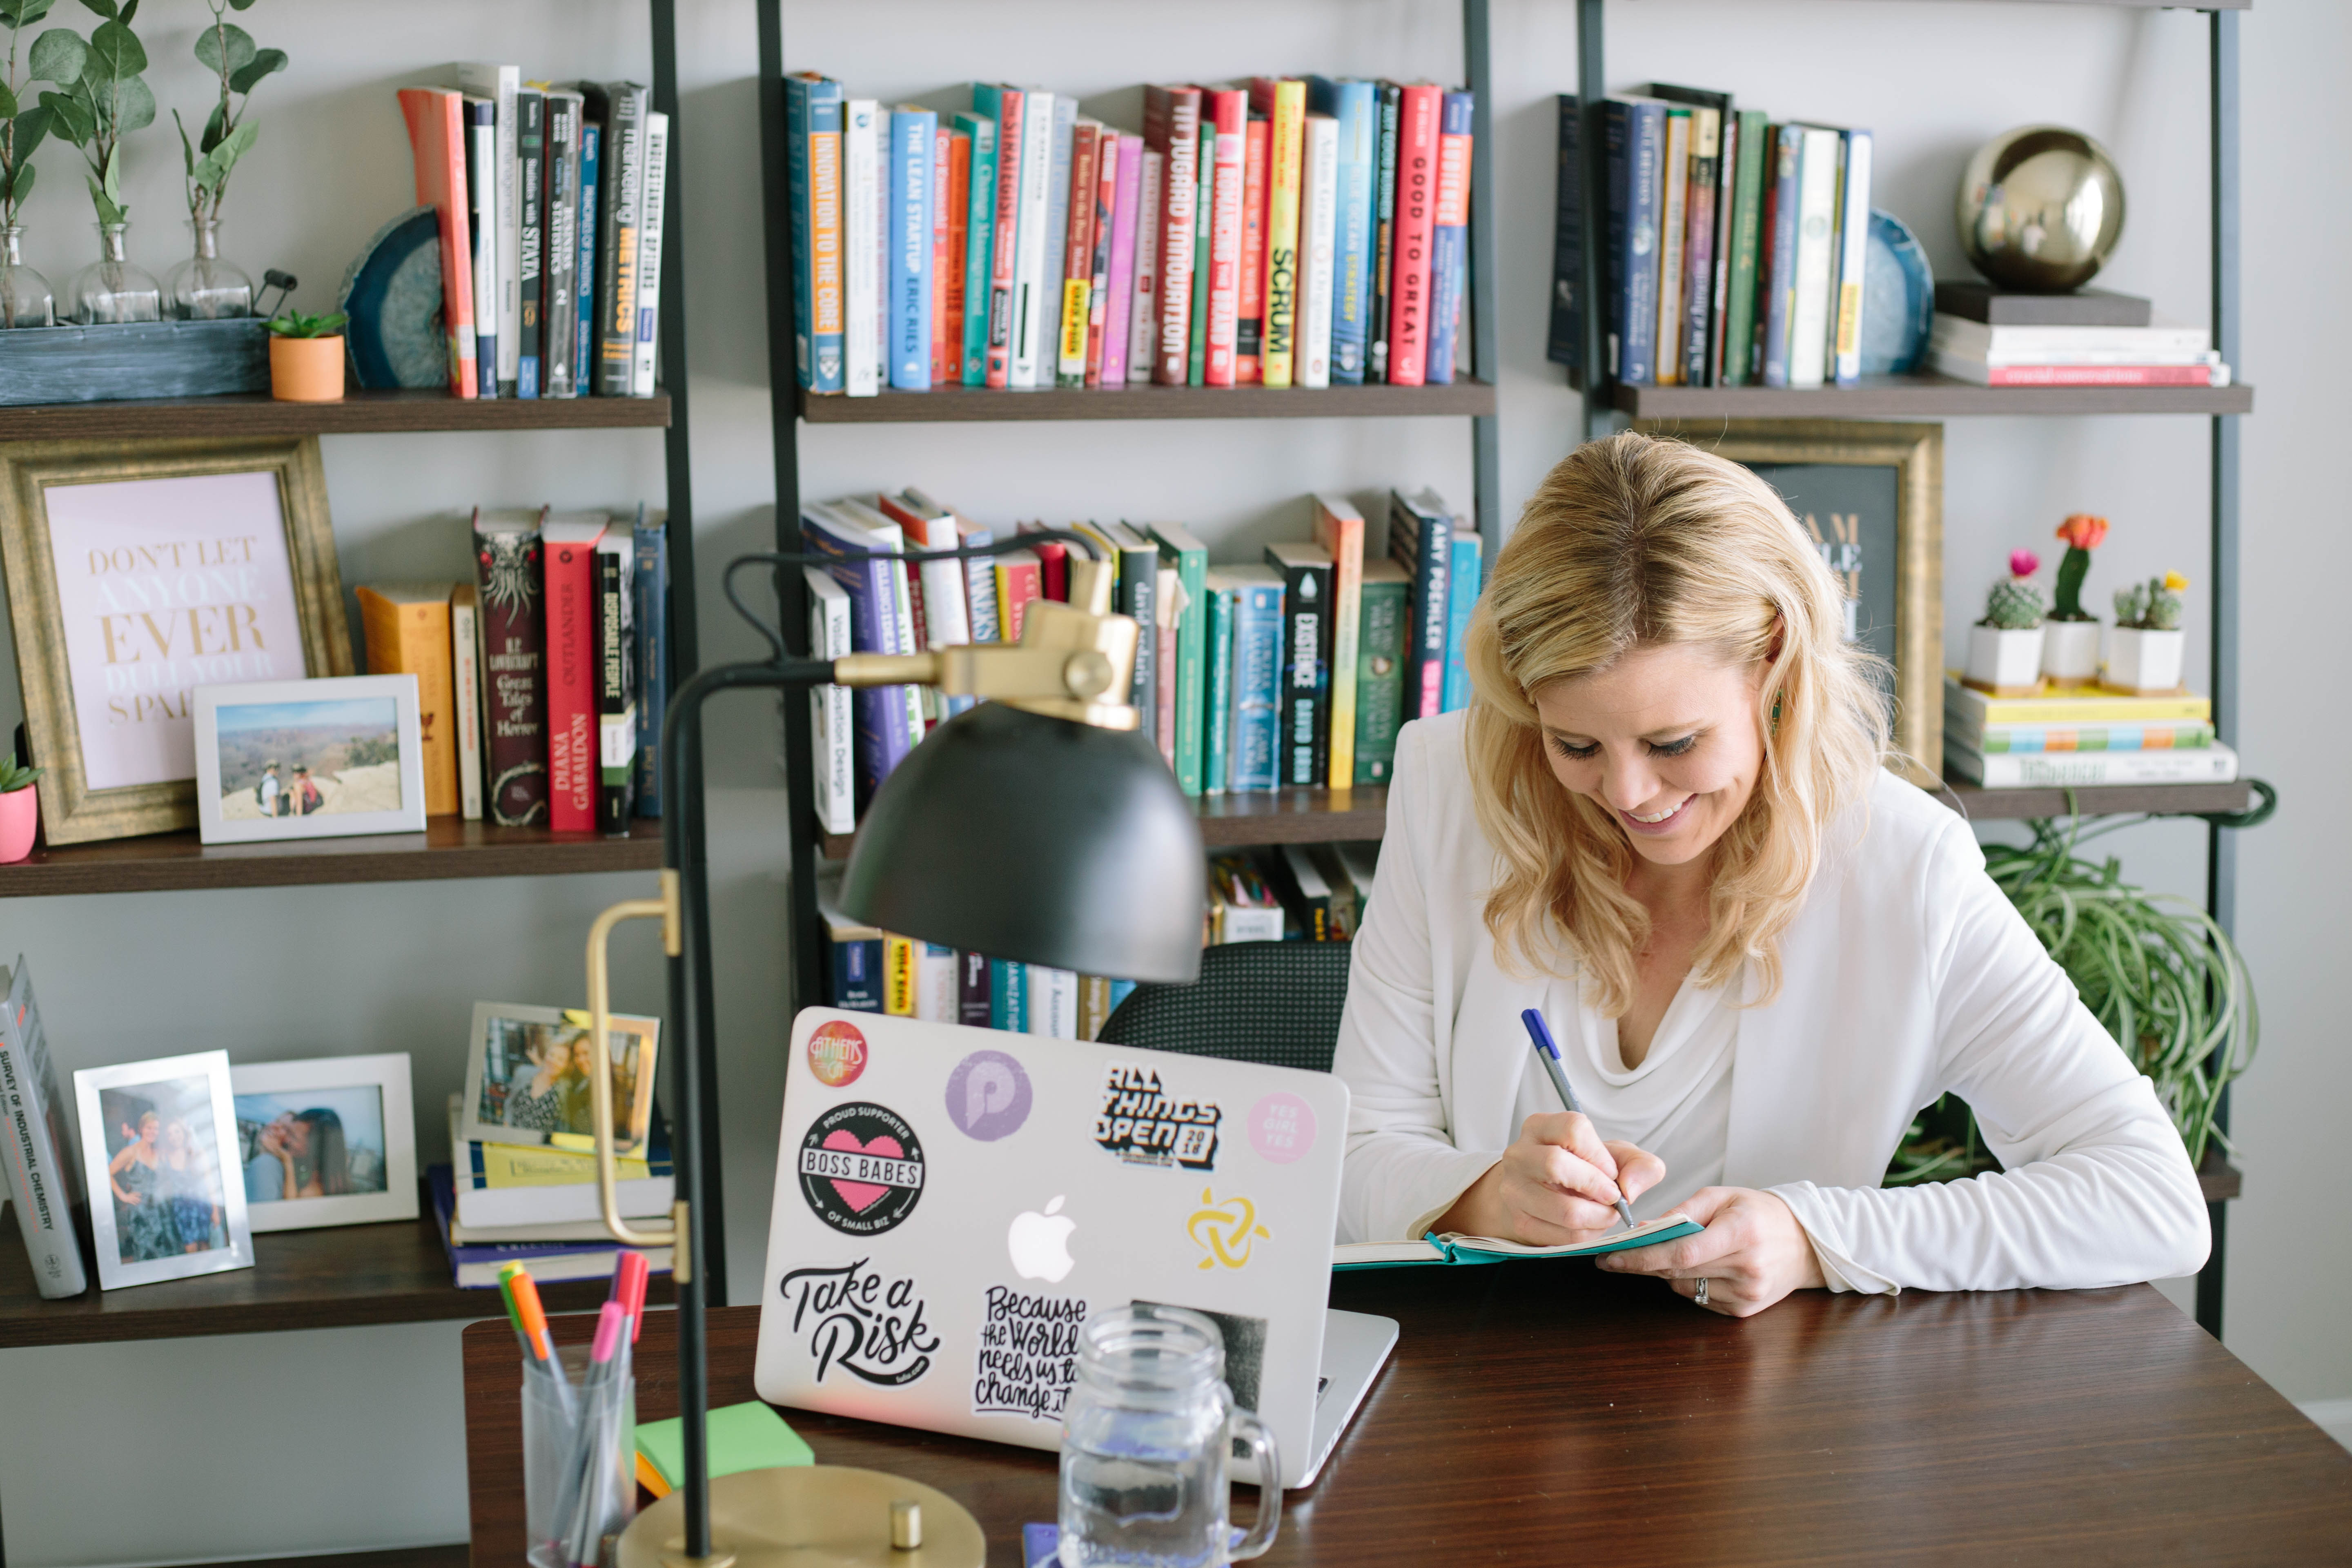 blond haired woman at desk taking notes with bookshelf behind her